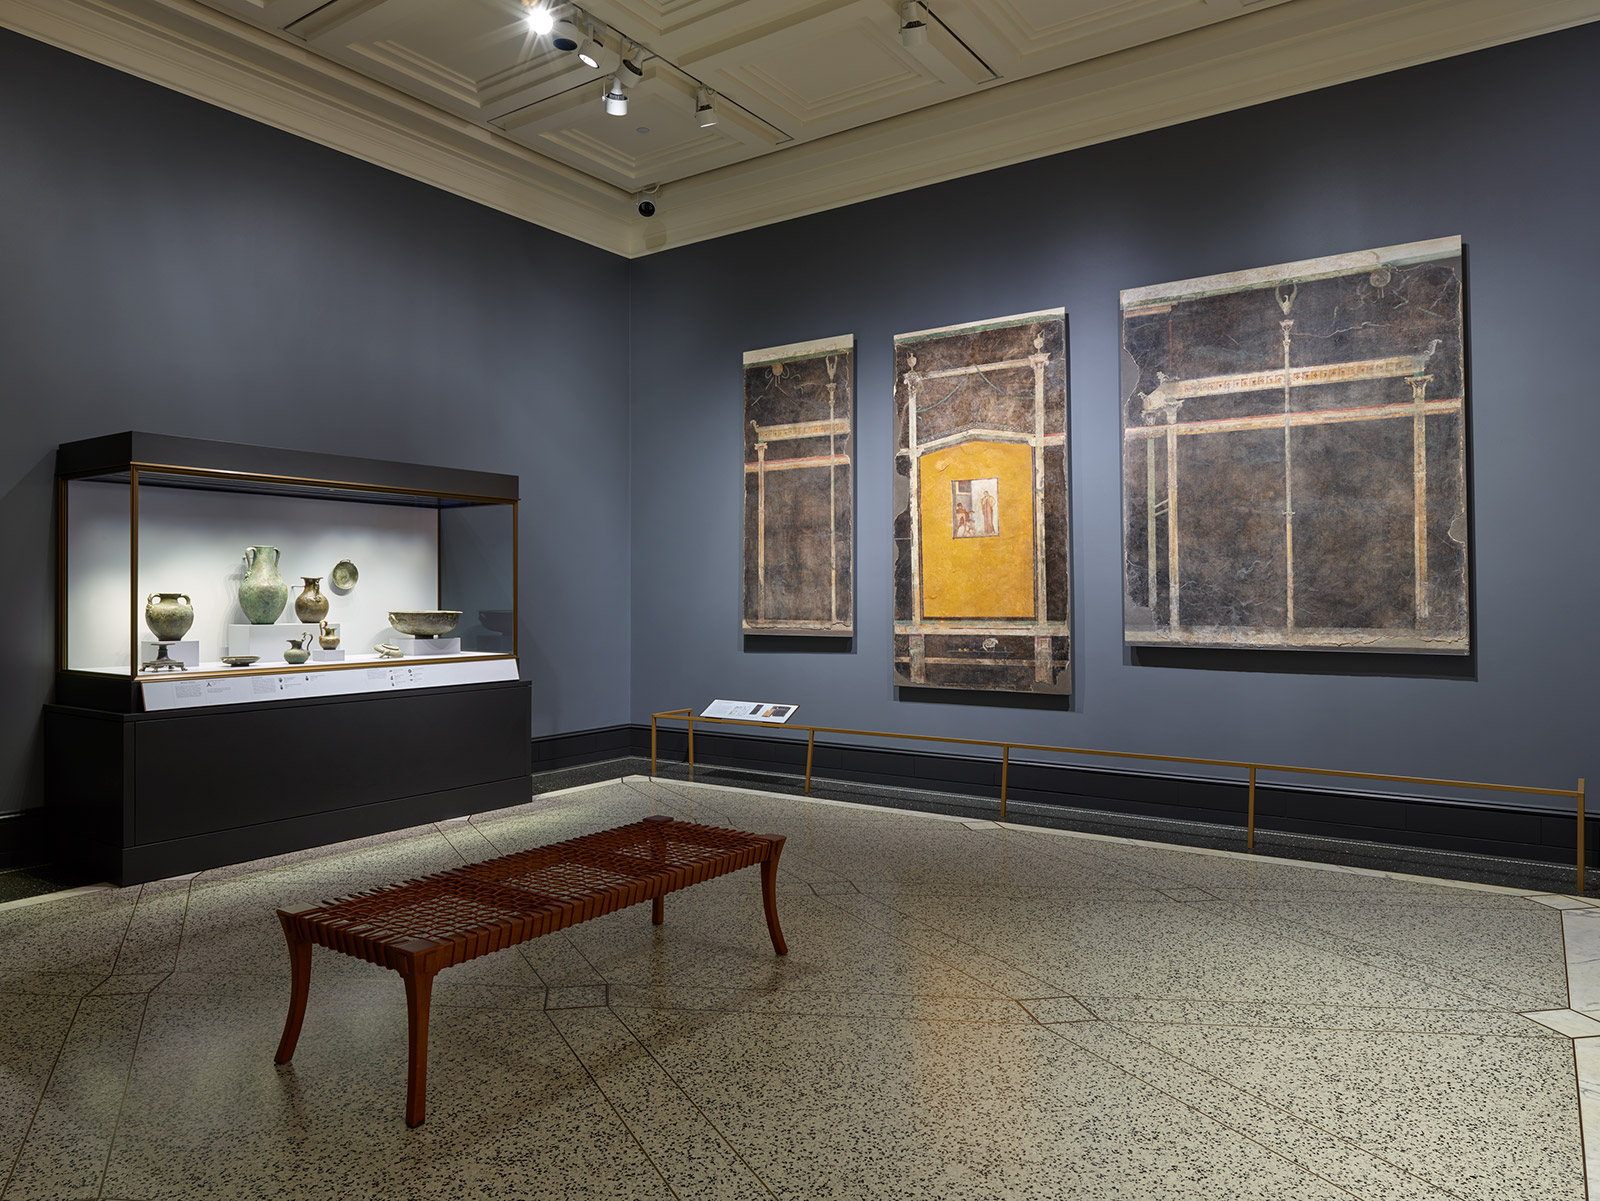 An empty gallery with blue walls contains a glass case of metal luxury goods at left and three large segments of an ancient Roman fresco at right